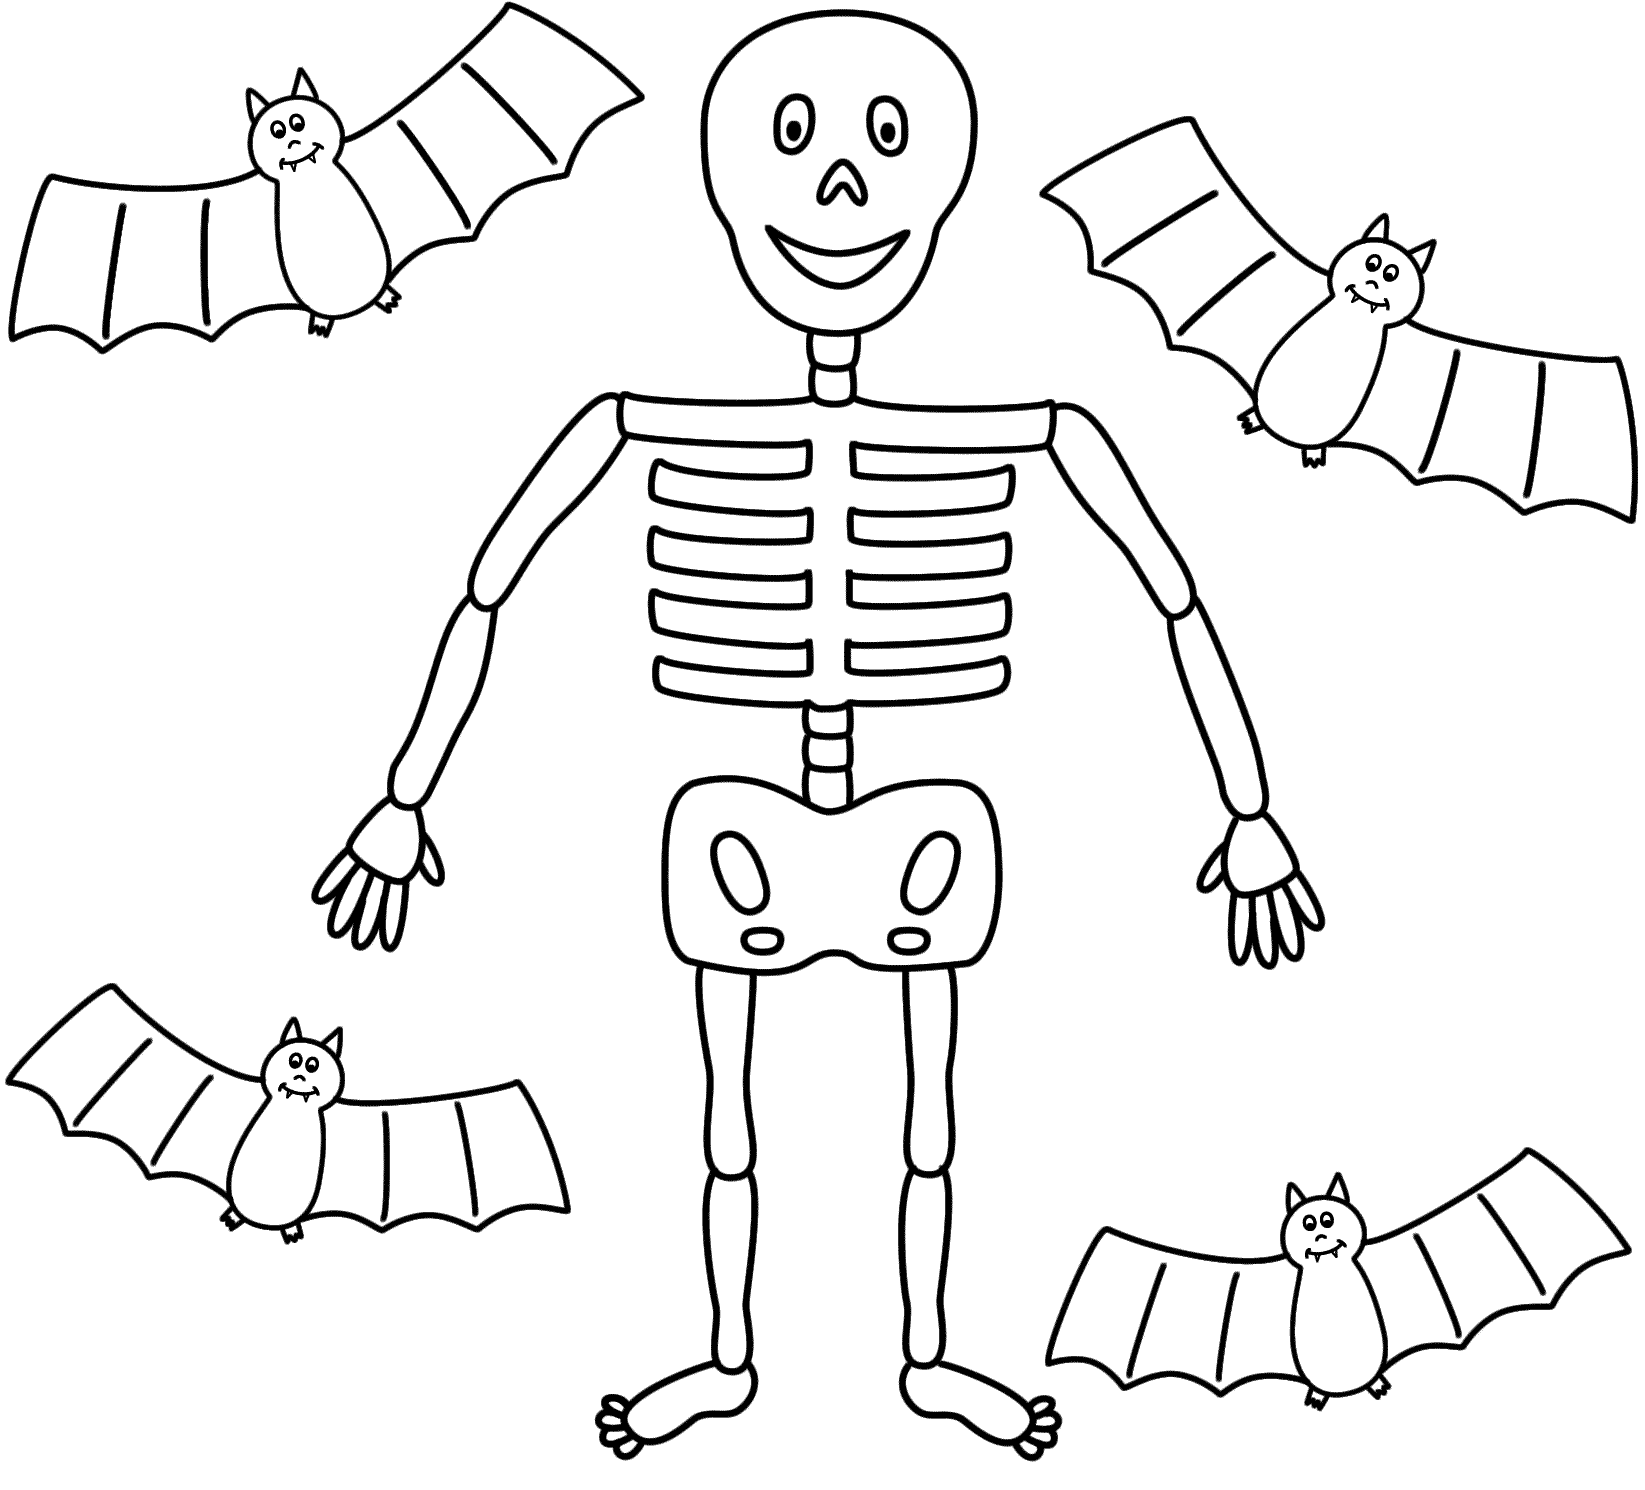 coloring picture of skeleton skeleton coloring pages gallery whitesbelfast skeleton picture of coloring